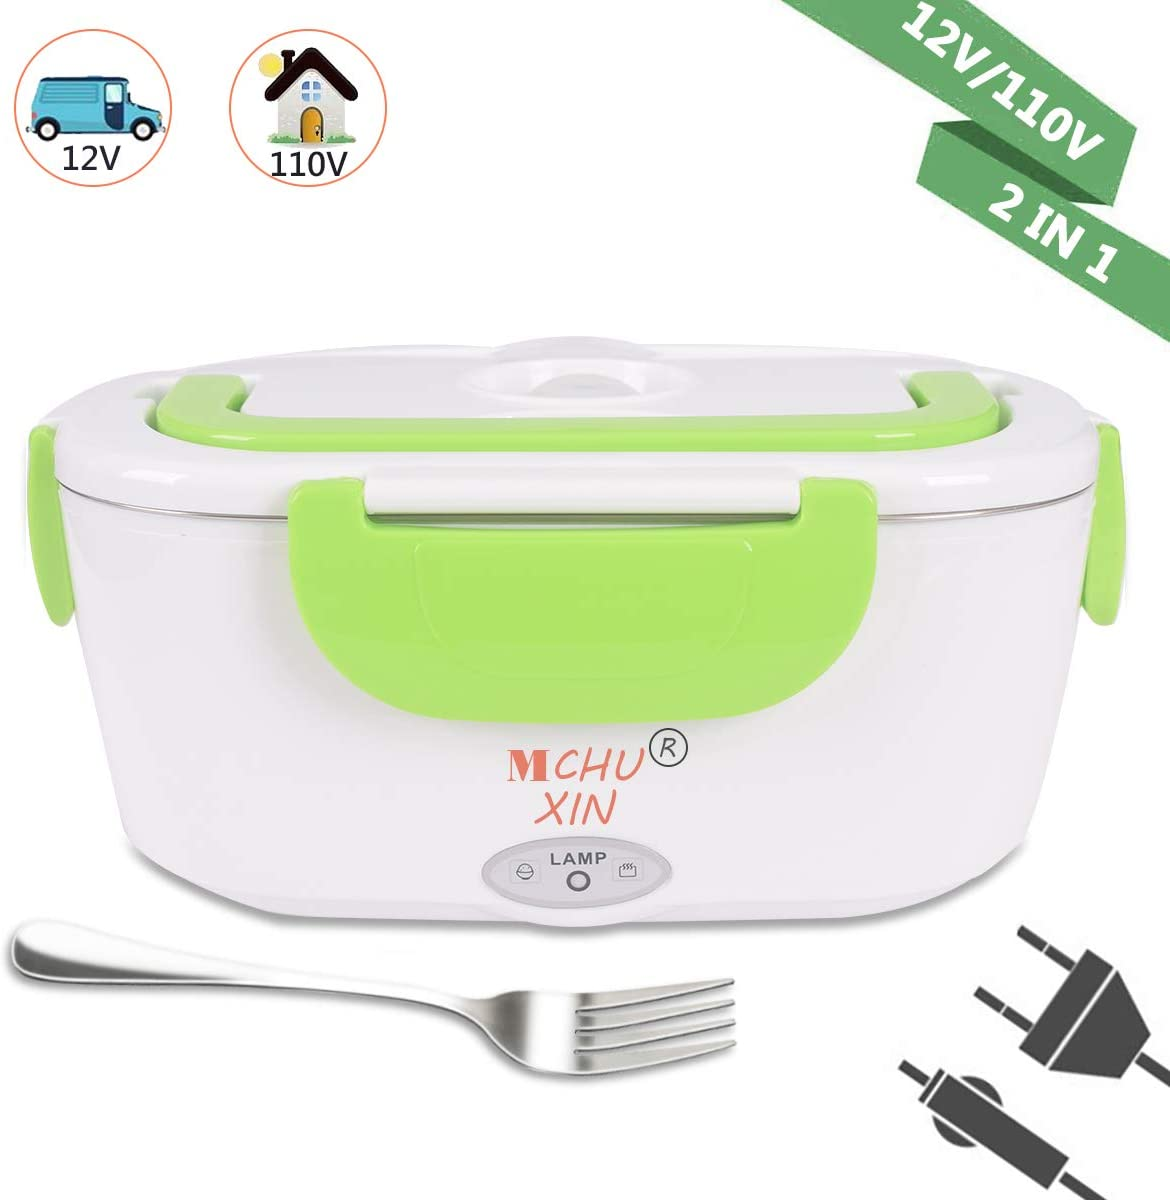 Electric Heating Lunch Box 2 in 1,Car and Home Use Portable Lunch Heater, Removable Stainless Steel Container Food Grade Material 110V and 12V (Green)